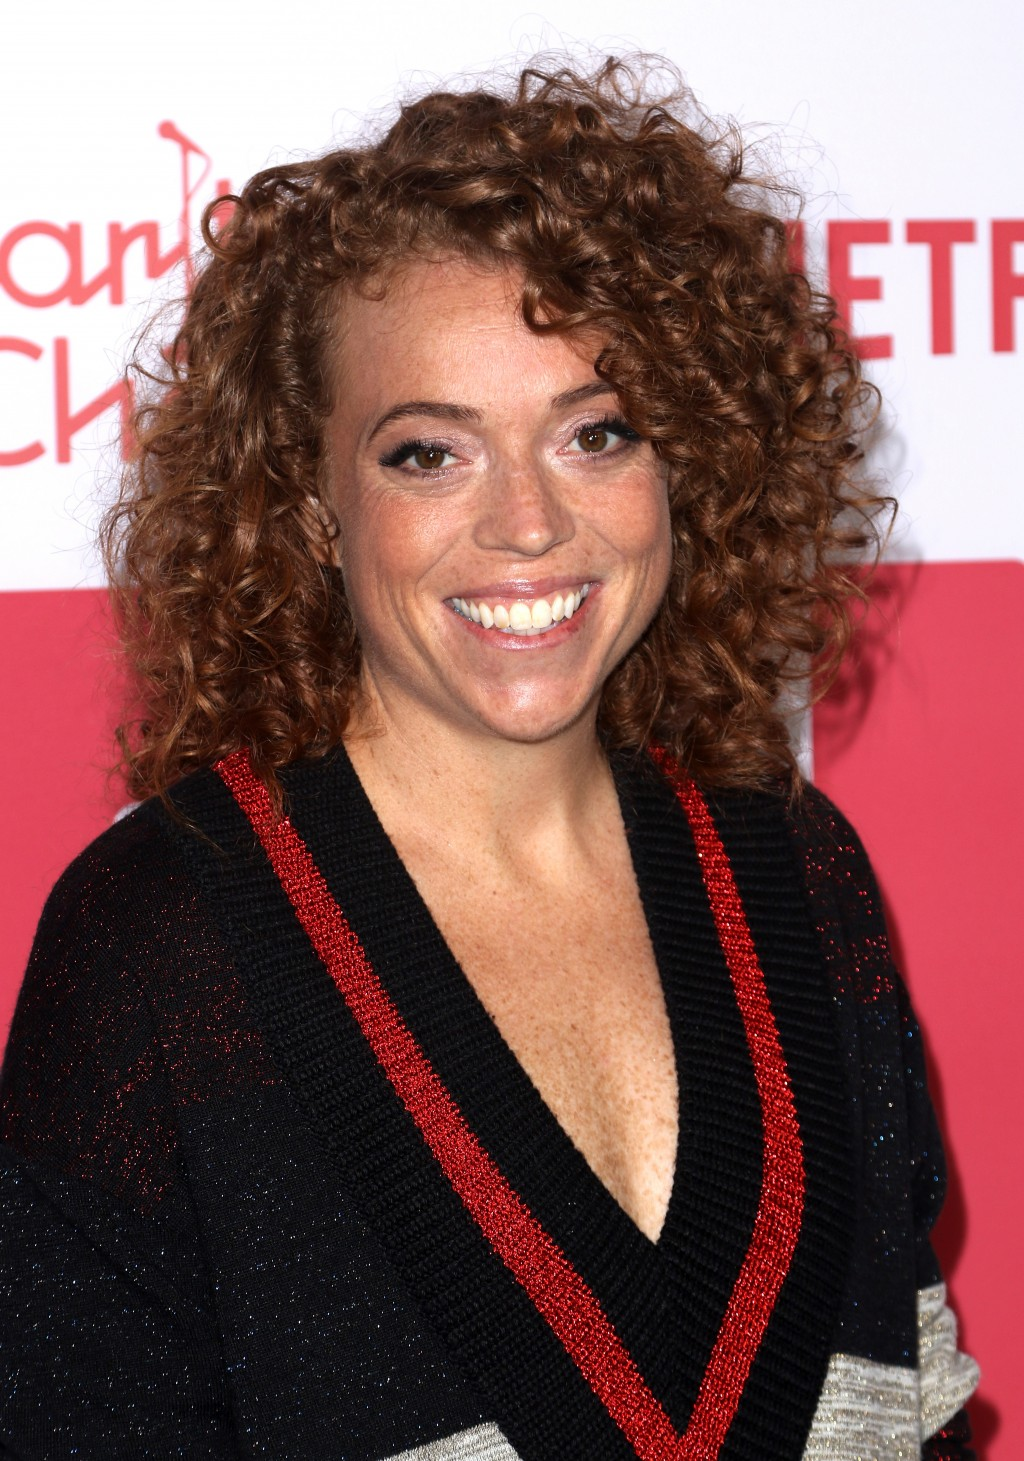 FILE - In this March 24, 2018 file photo, Michelle Wolf arrives at the 6th Annual Hilarity For Charity Los Angeles Variety Show at the Hollywood Palla...